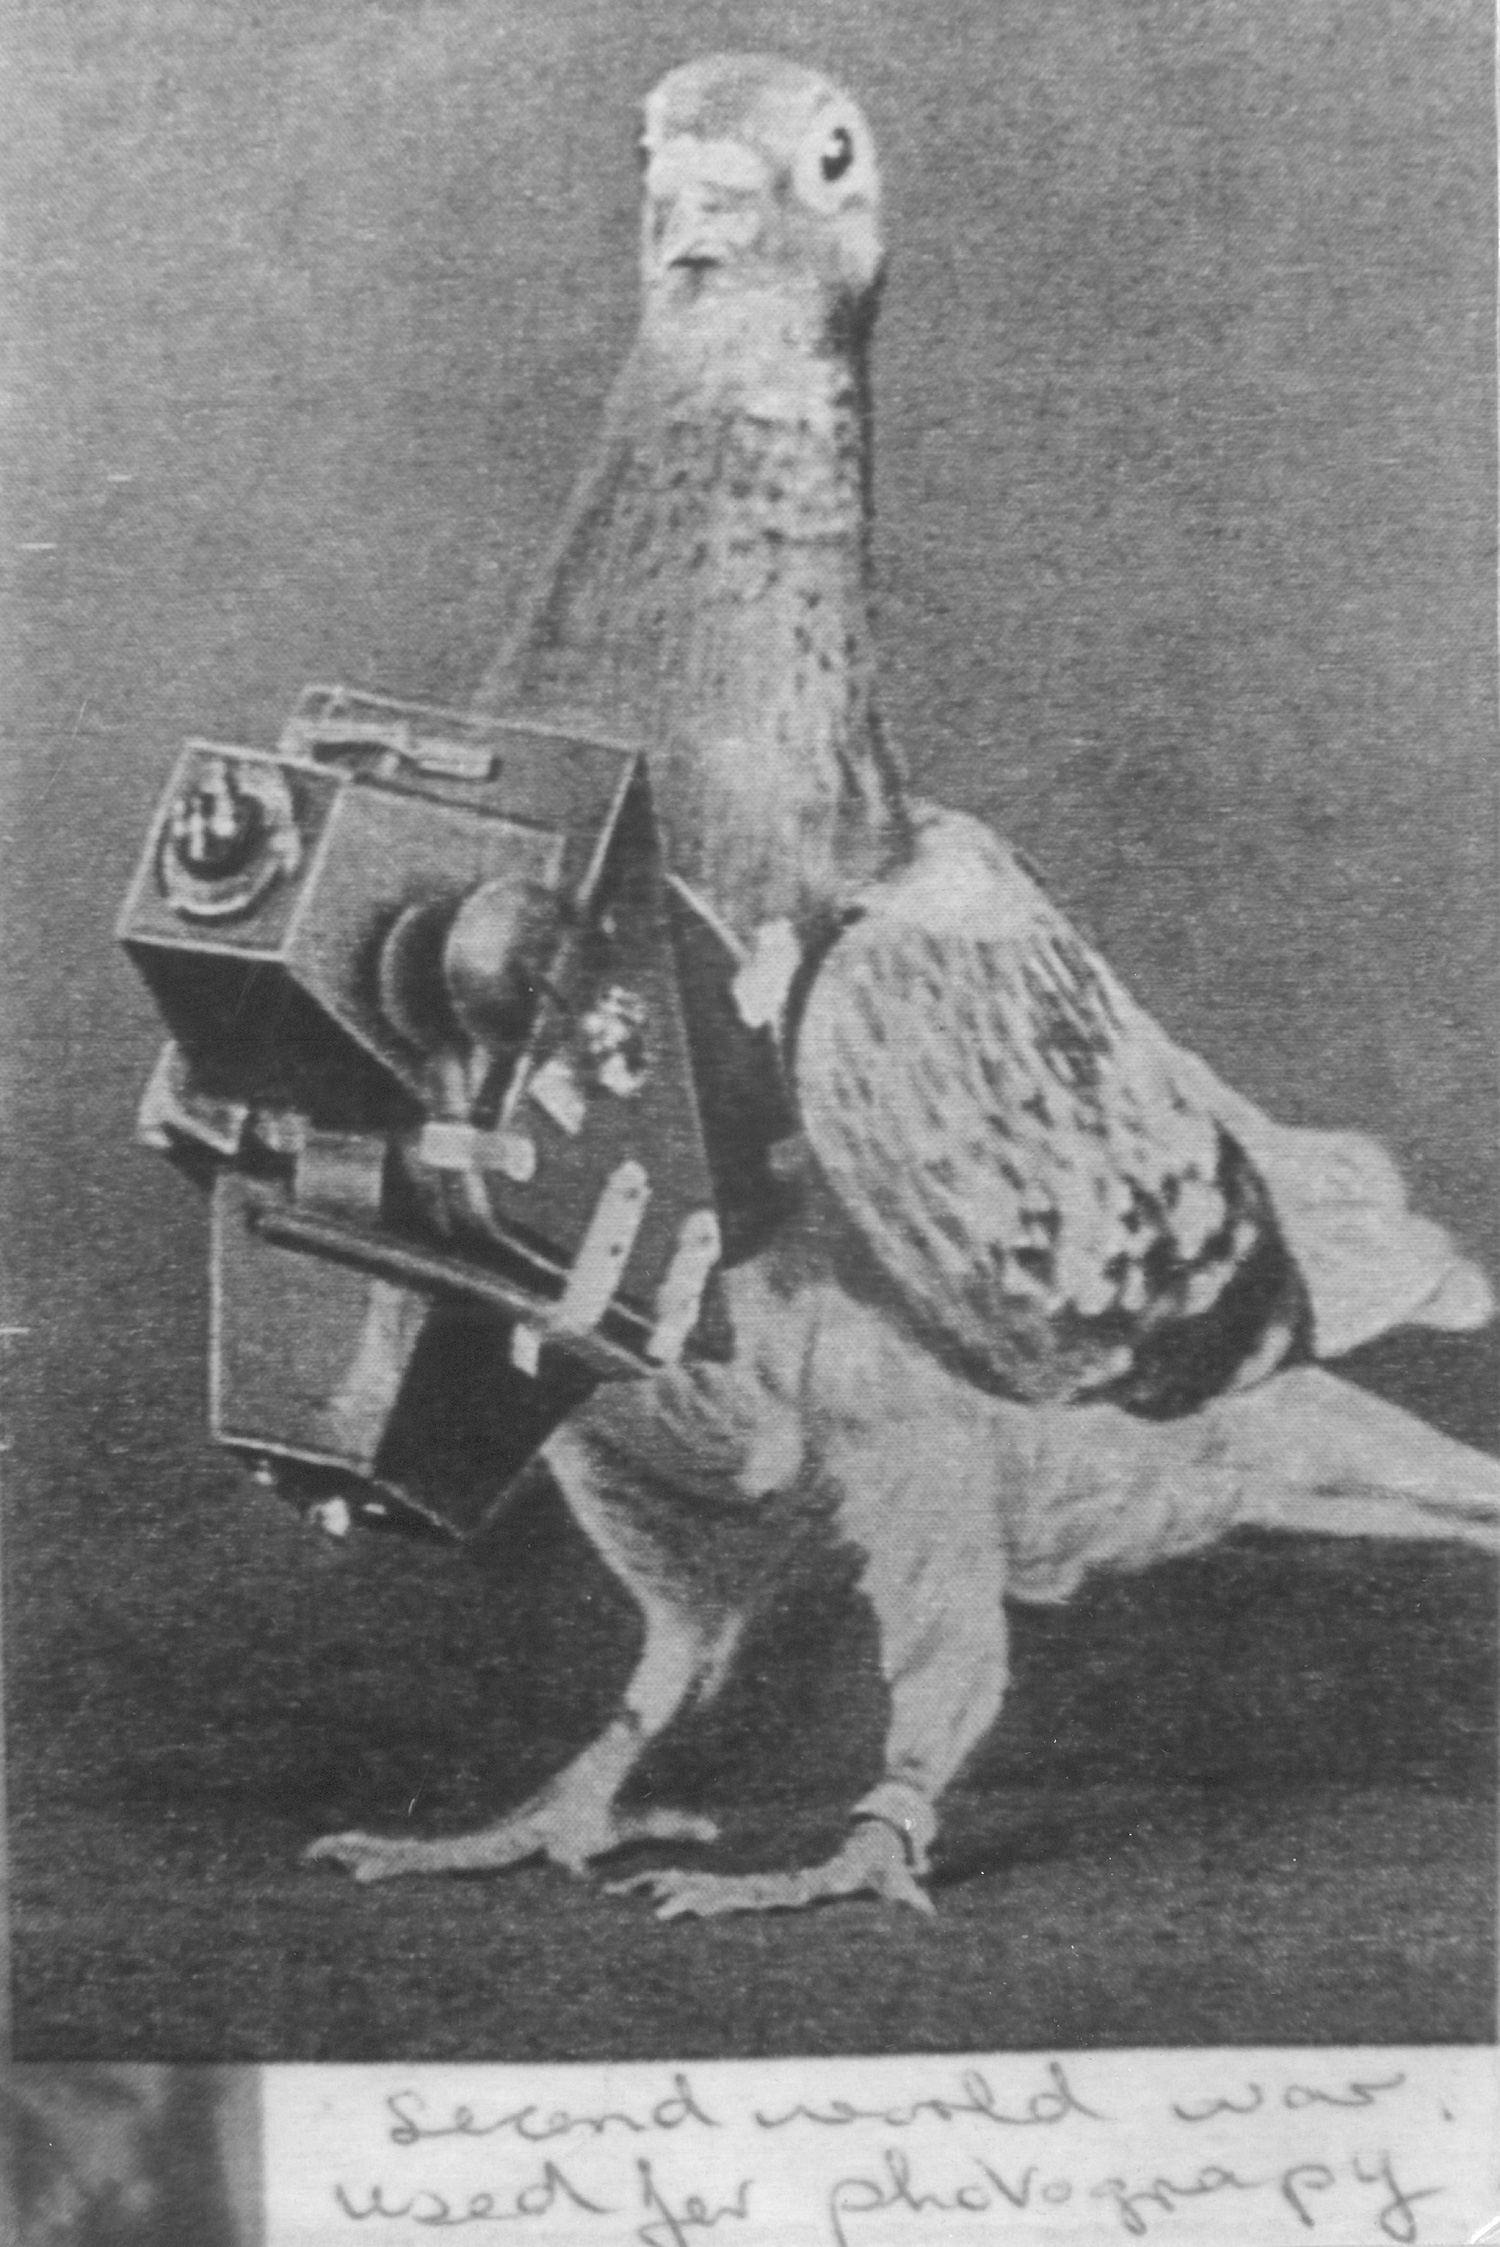 An aerial reconnaissance pigeon, trained to fly over enemy lines with a clockwork camera to snap images before returning home with the intelligence. AR/BNPS